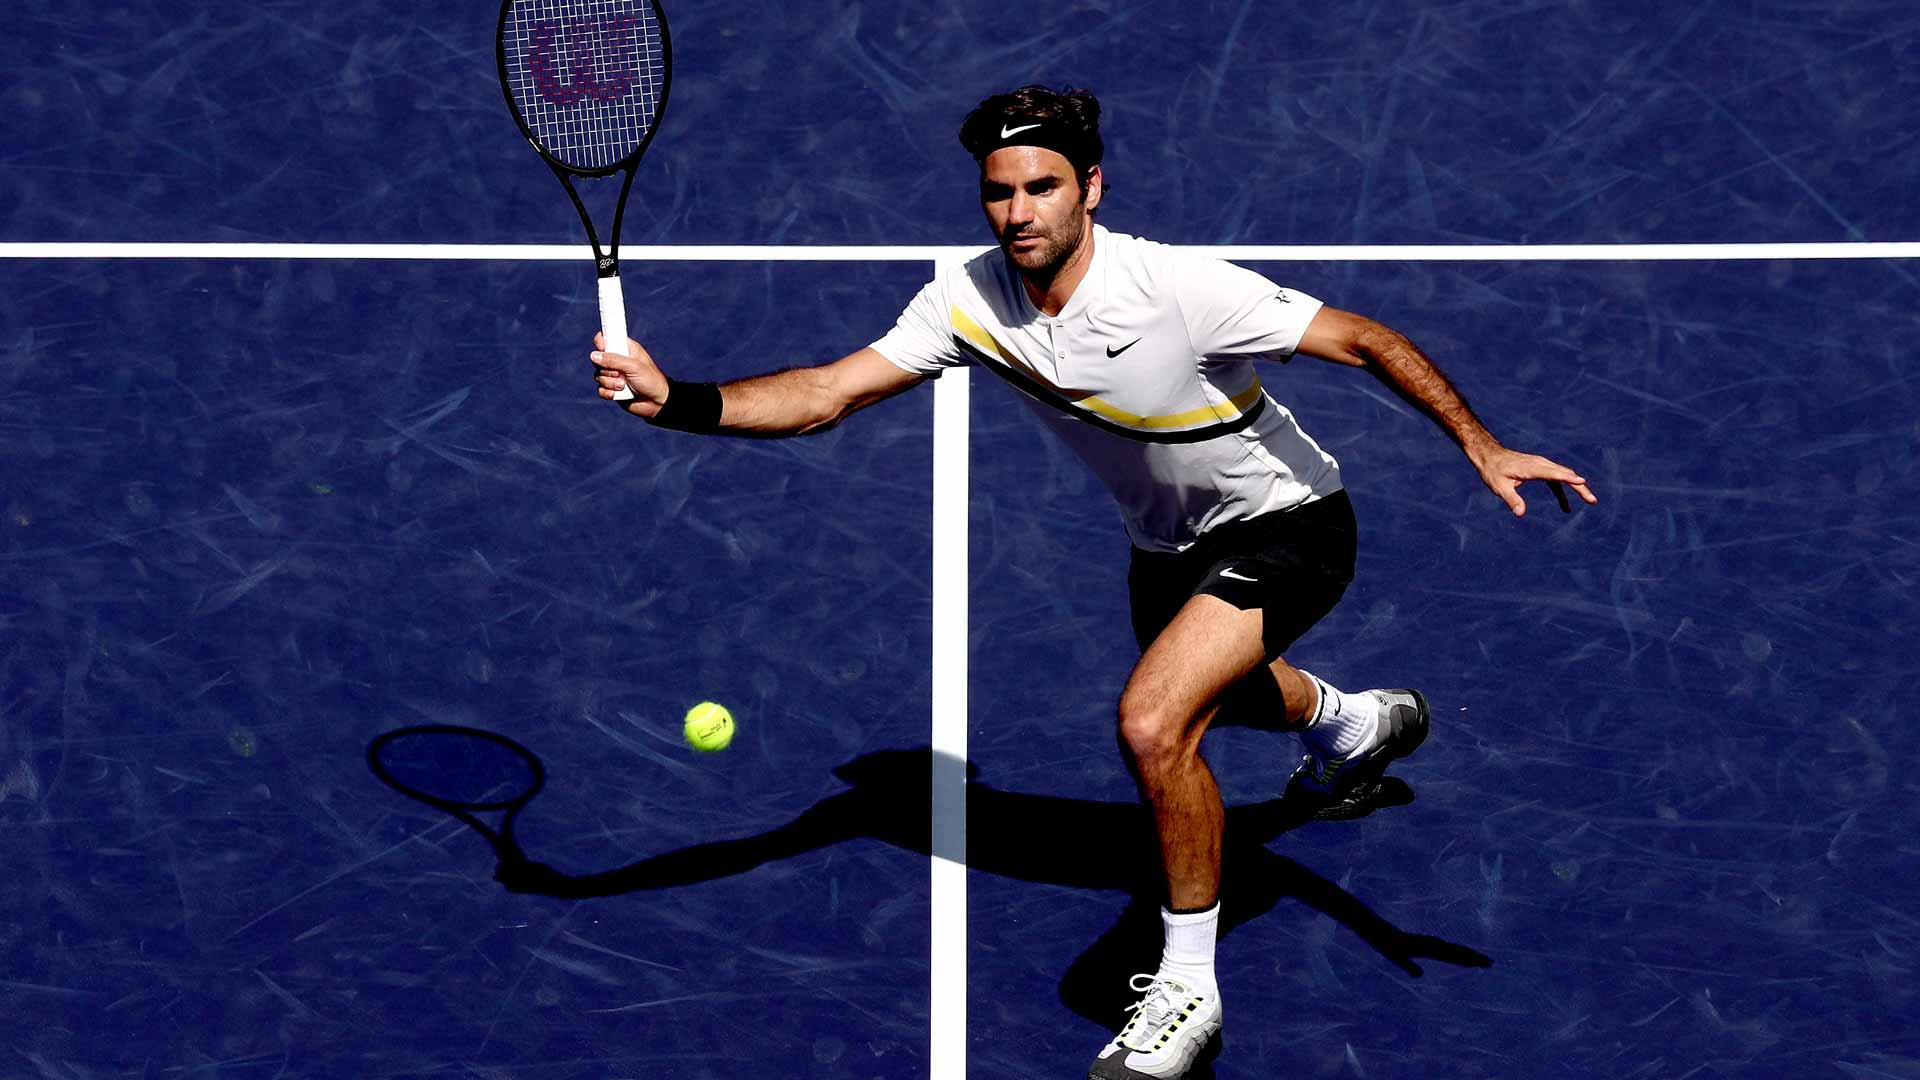 federer-miami-preview-2018-friday | ATP World Tour | Tennis